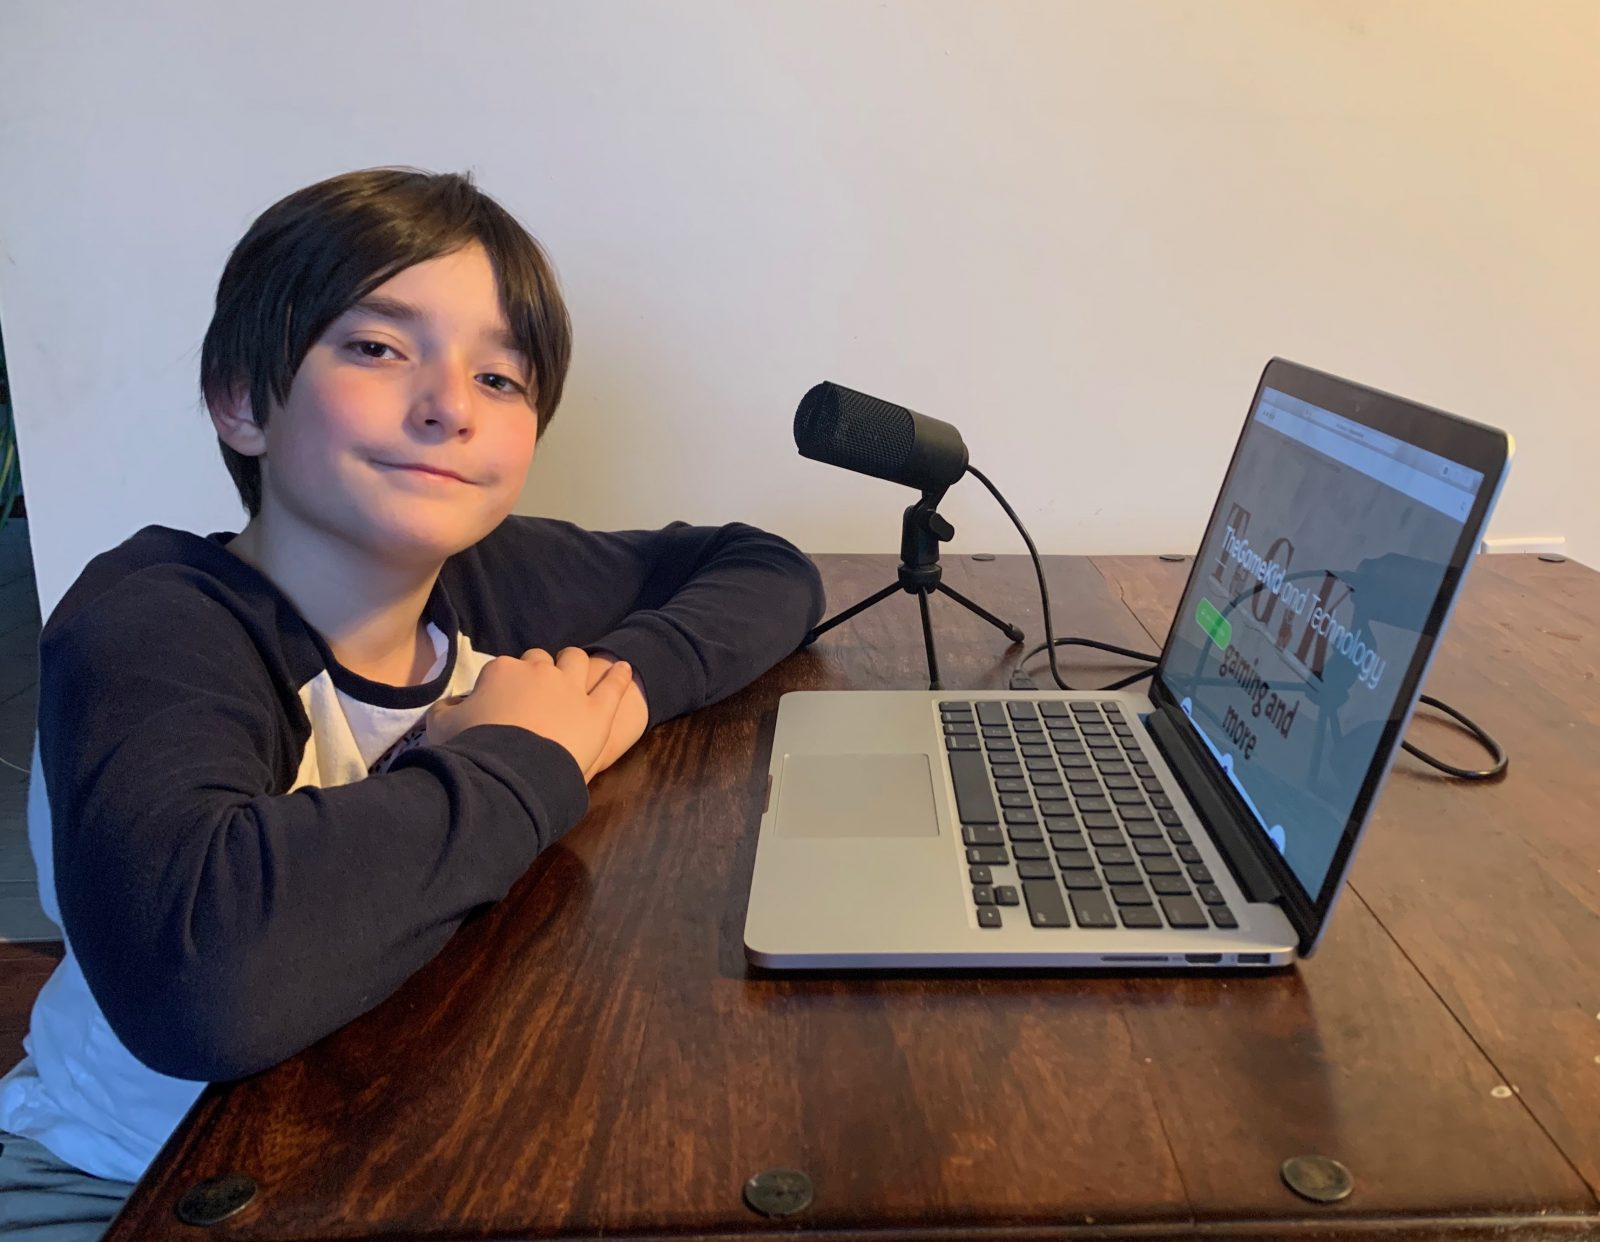 Podcasting a passion